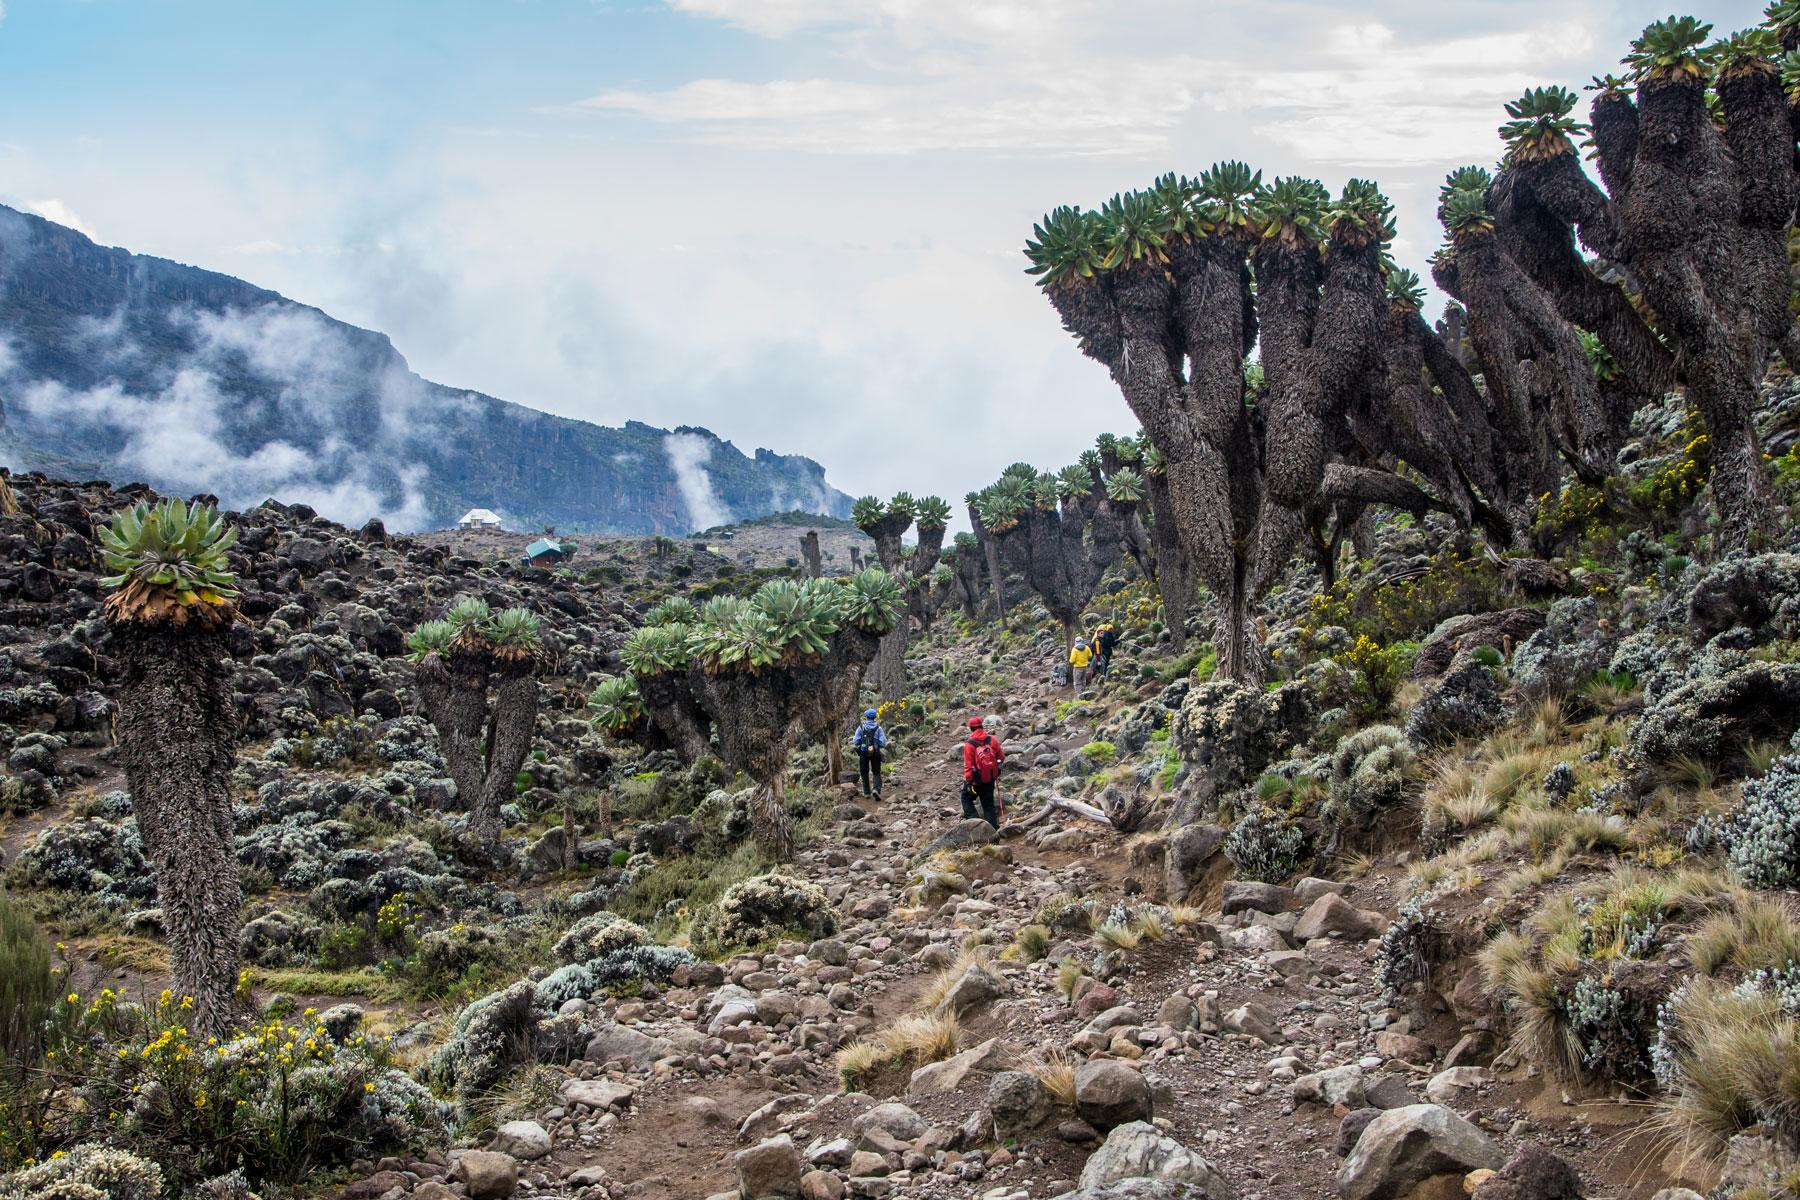 The 10 Most Stunning Hikes in Africa